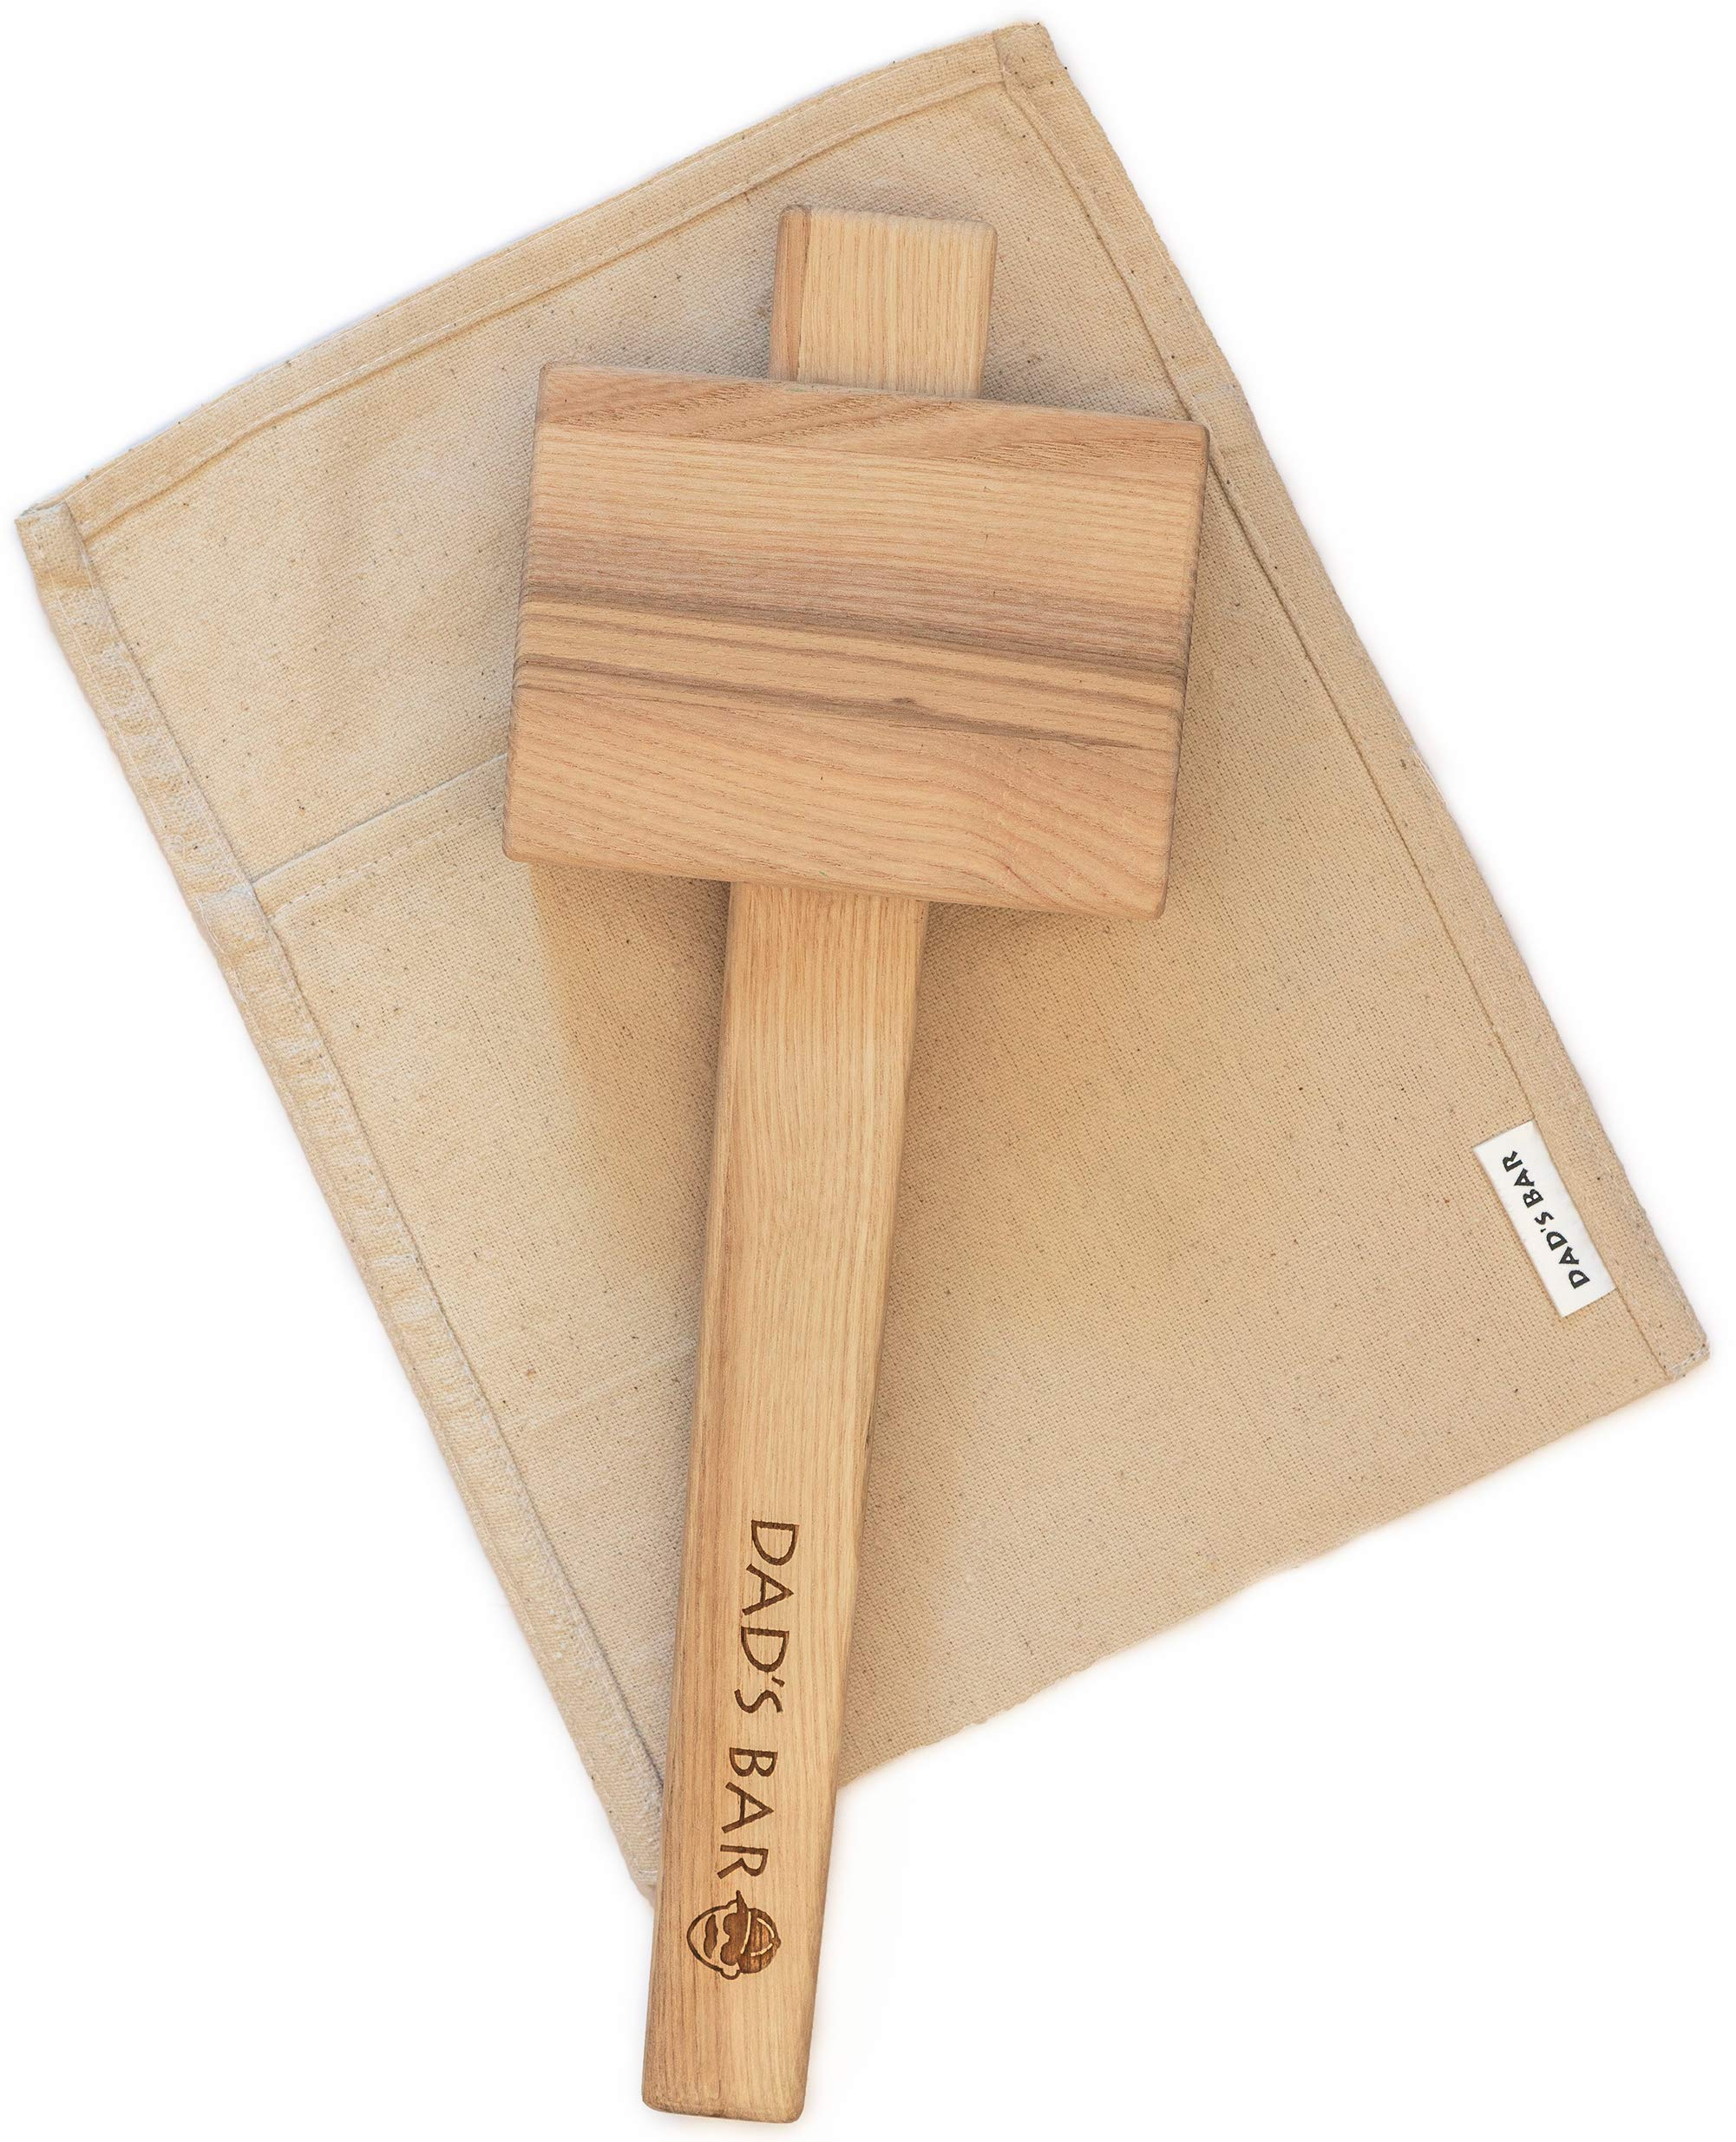 Lewis Bag and Ice Mallet effective and stylish manual Ice Crusher by Dad's Bar Large Mallet 14 Inches by Dad's Bar